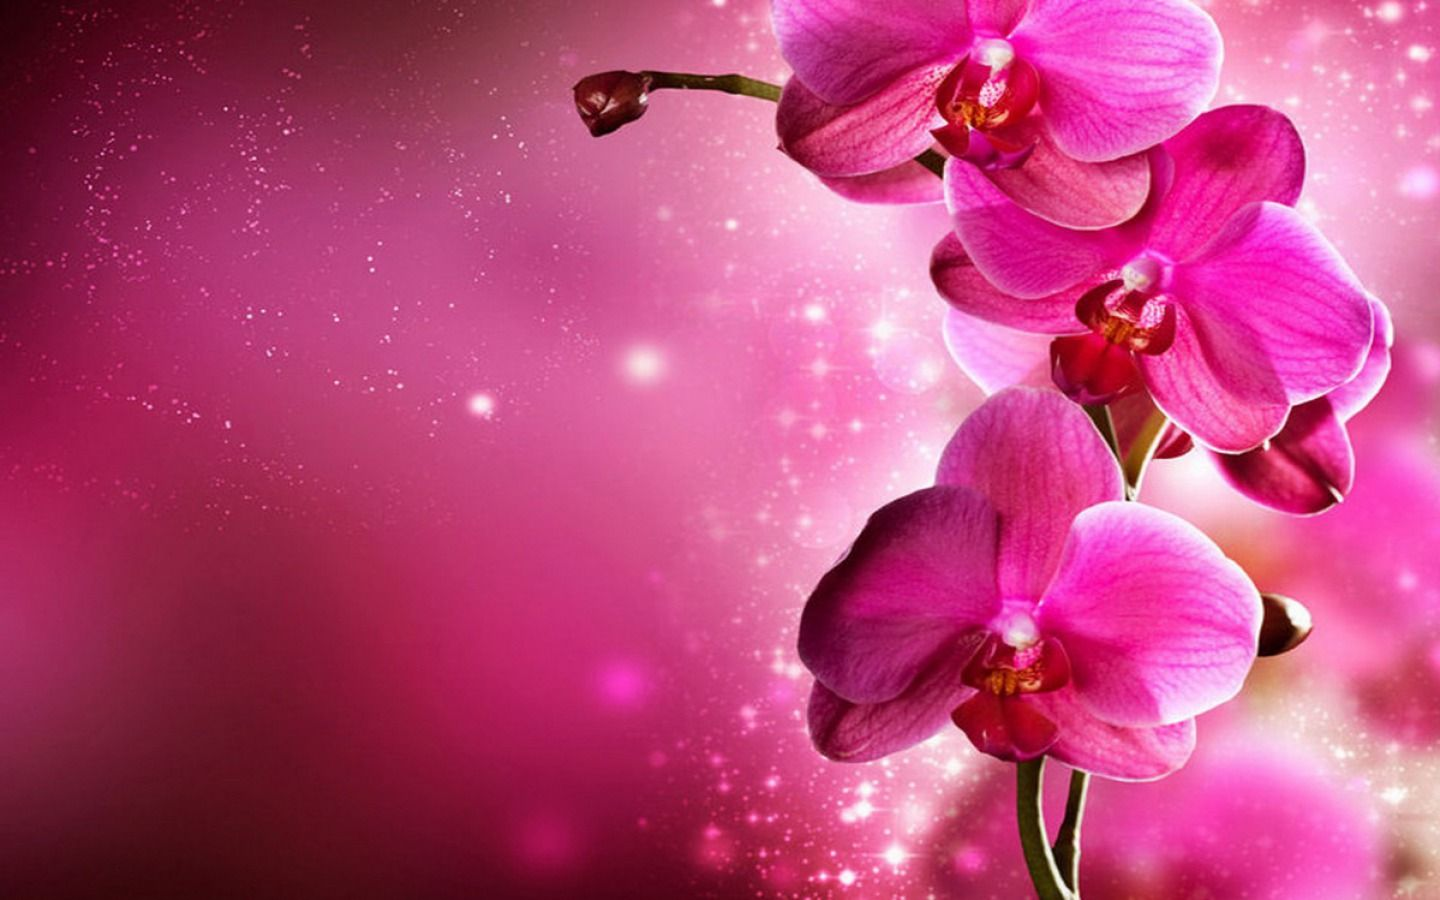 pink floral |  flowers pink wallpaper hd wallpaper - orchid